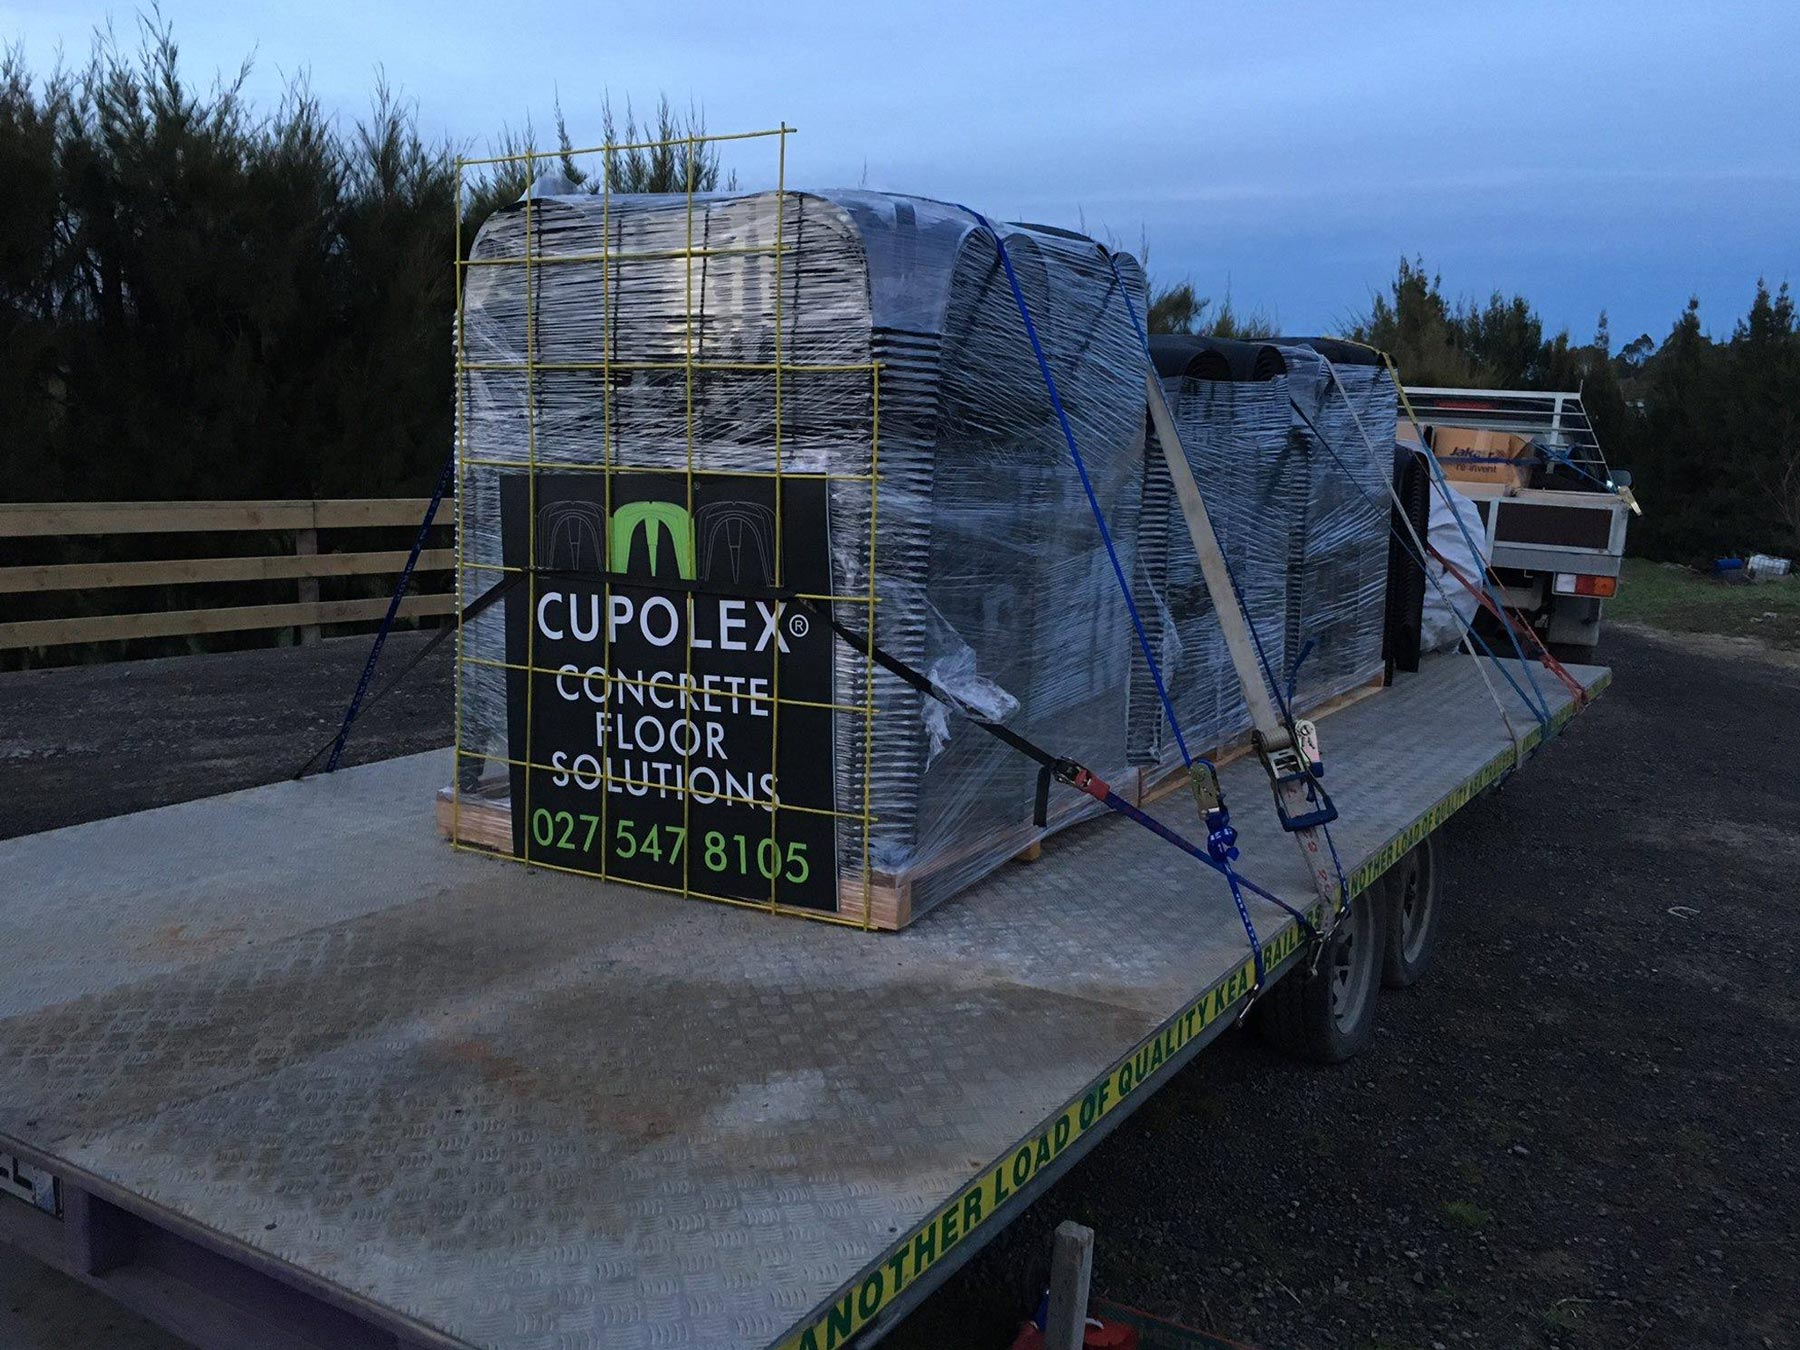 cupolex product on trailer